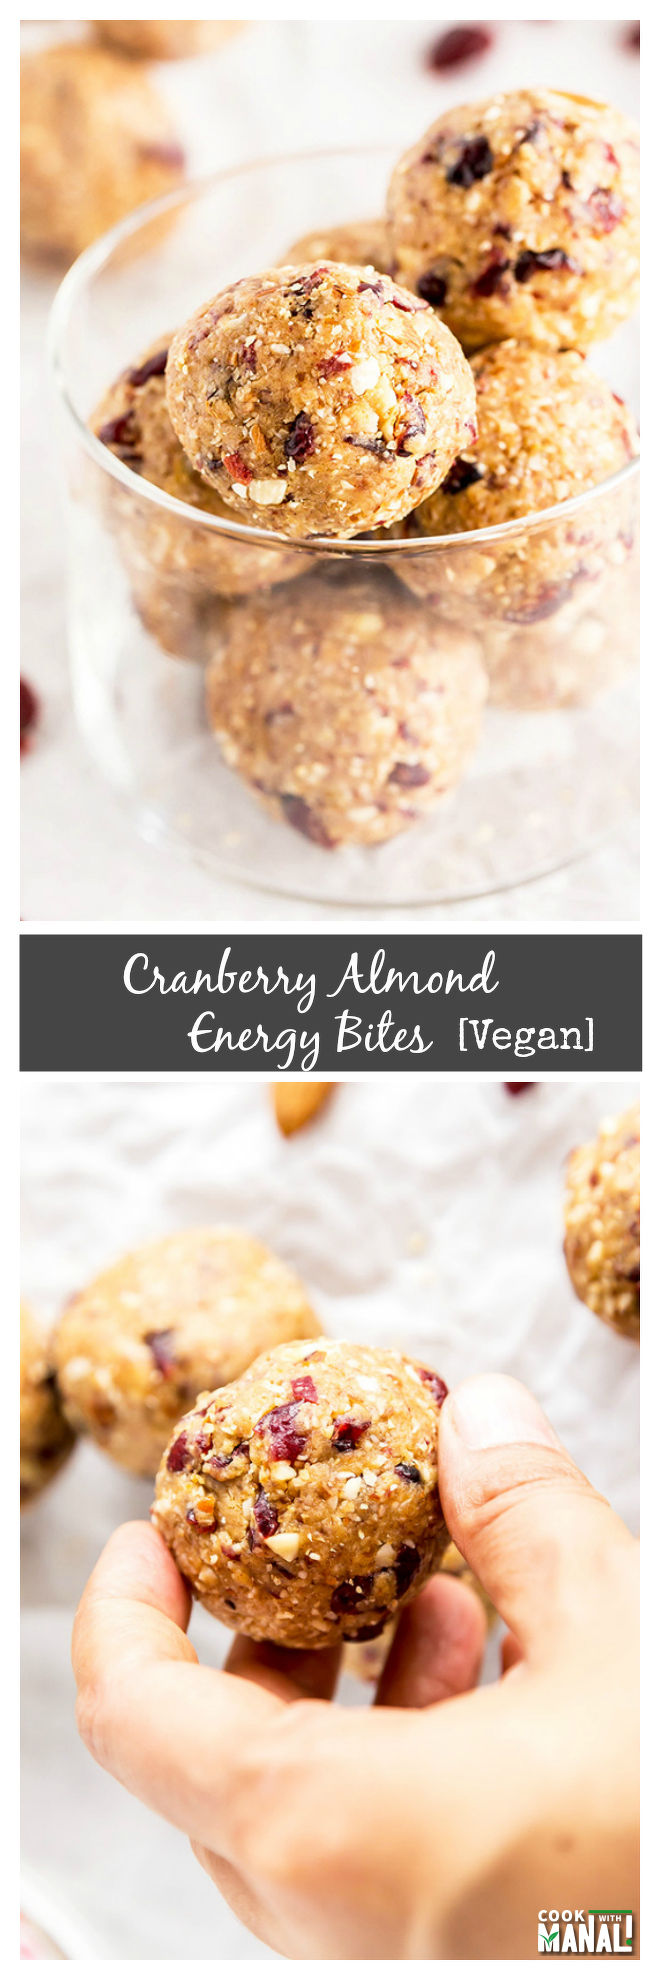 no-bake-cranberry-almond-energy-bites-collage